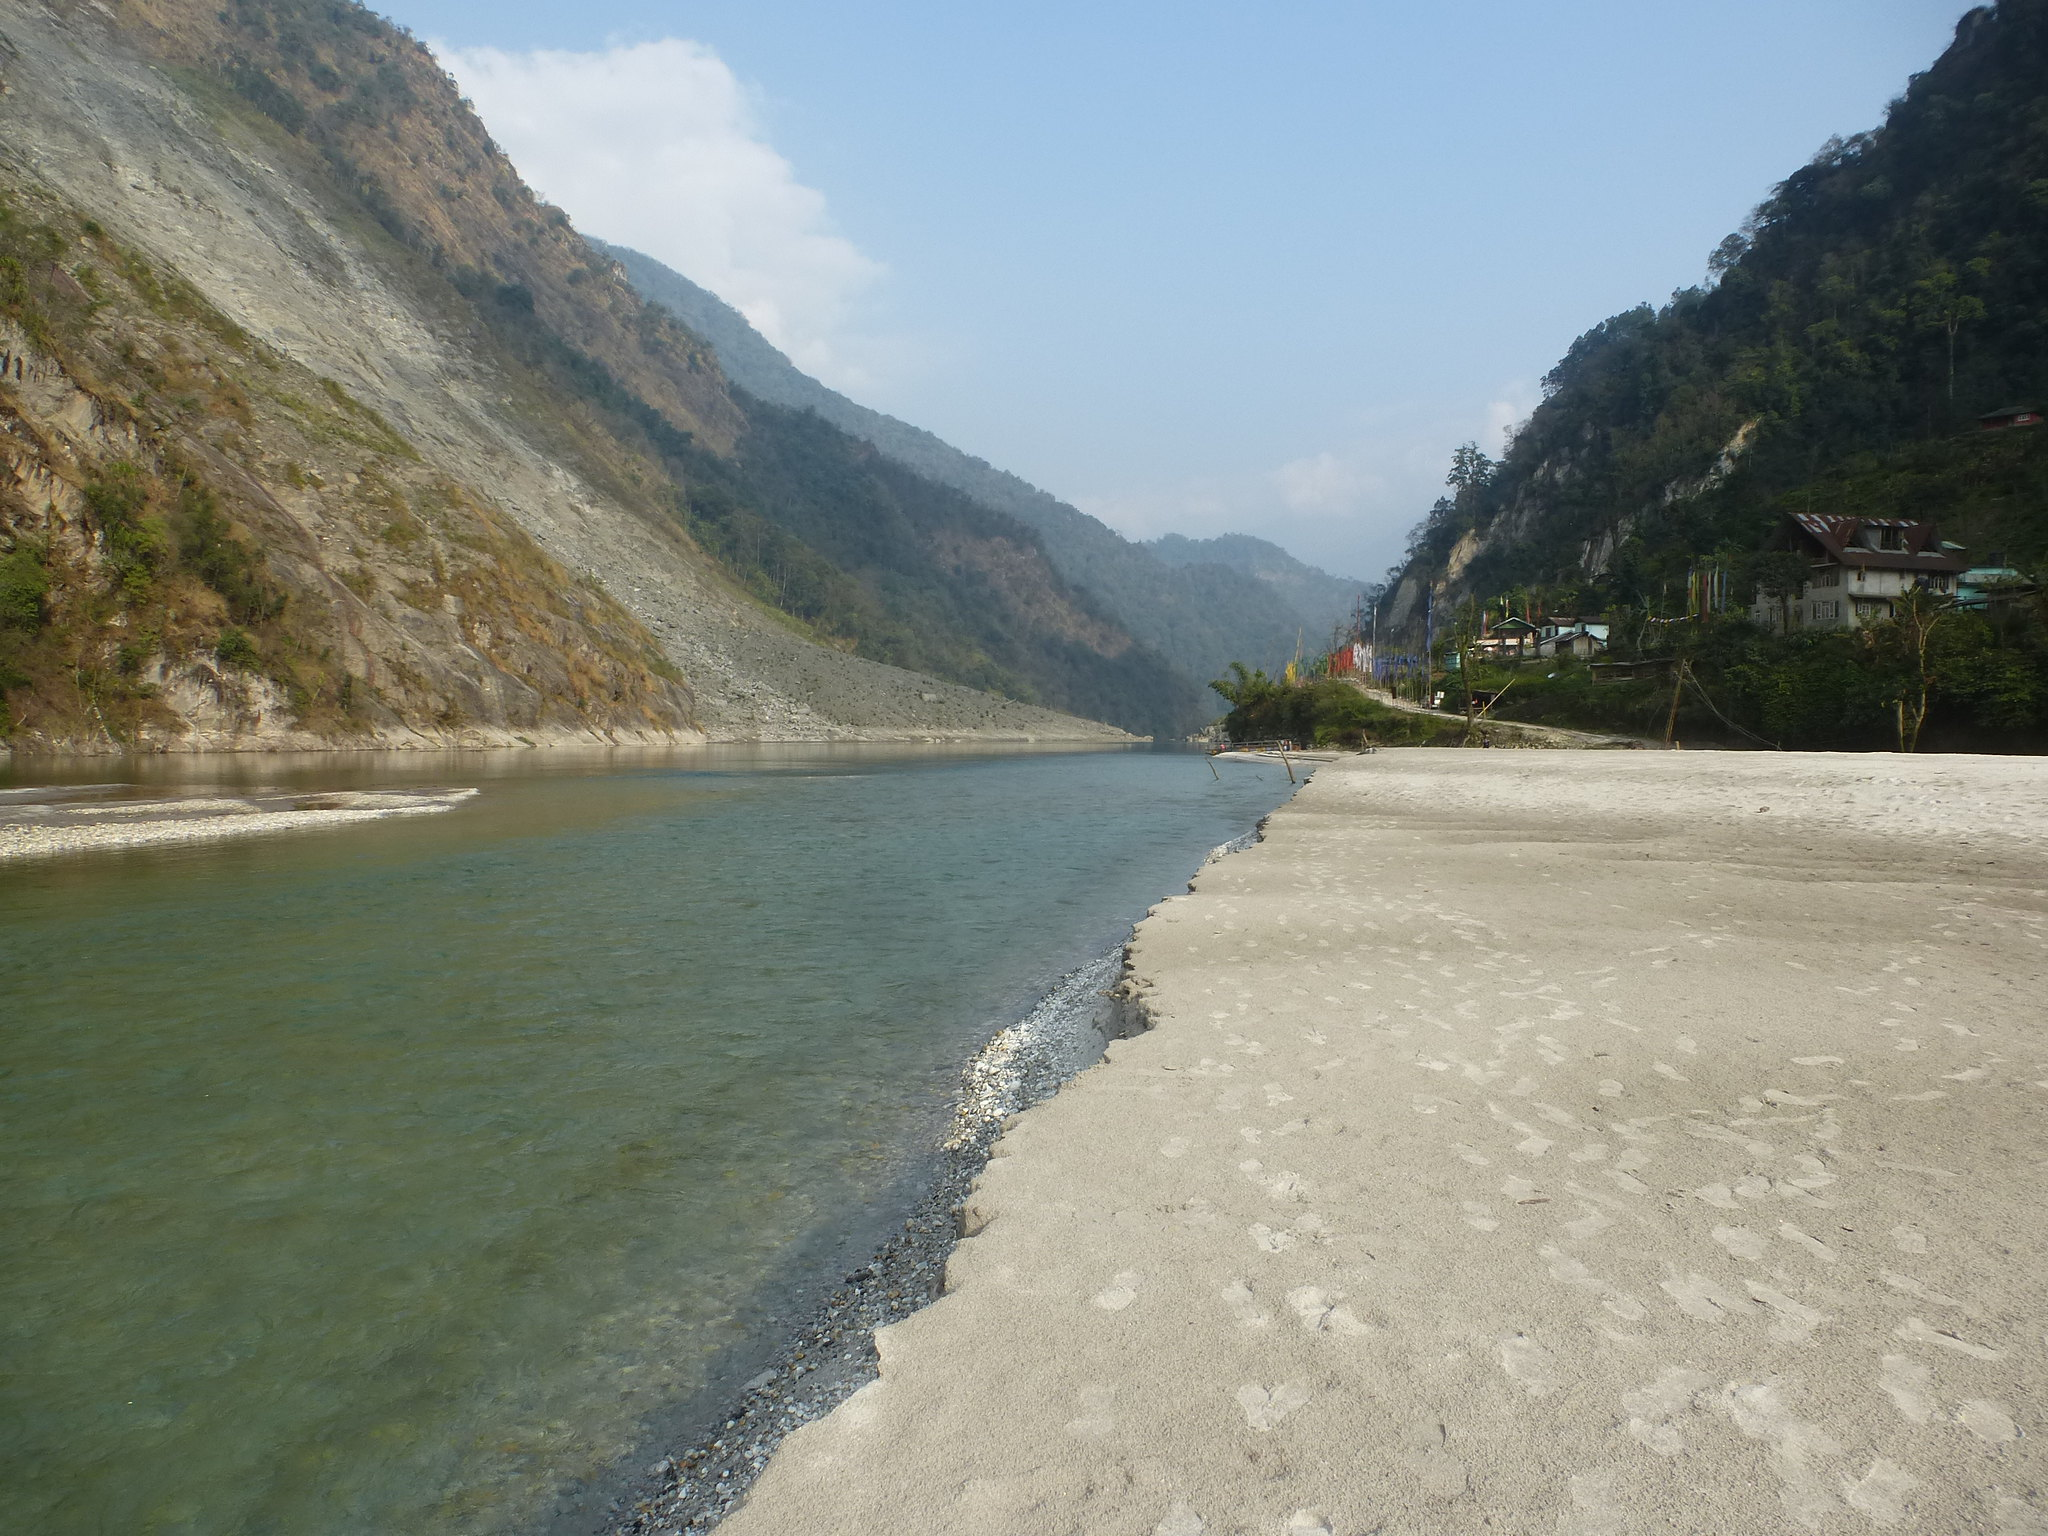 A huge sandbank has been formed on the Rongyoung due to silt being blocked by the Mantam landslide.